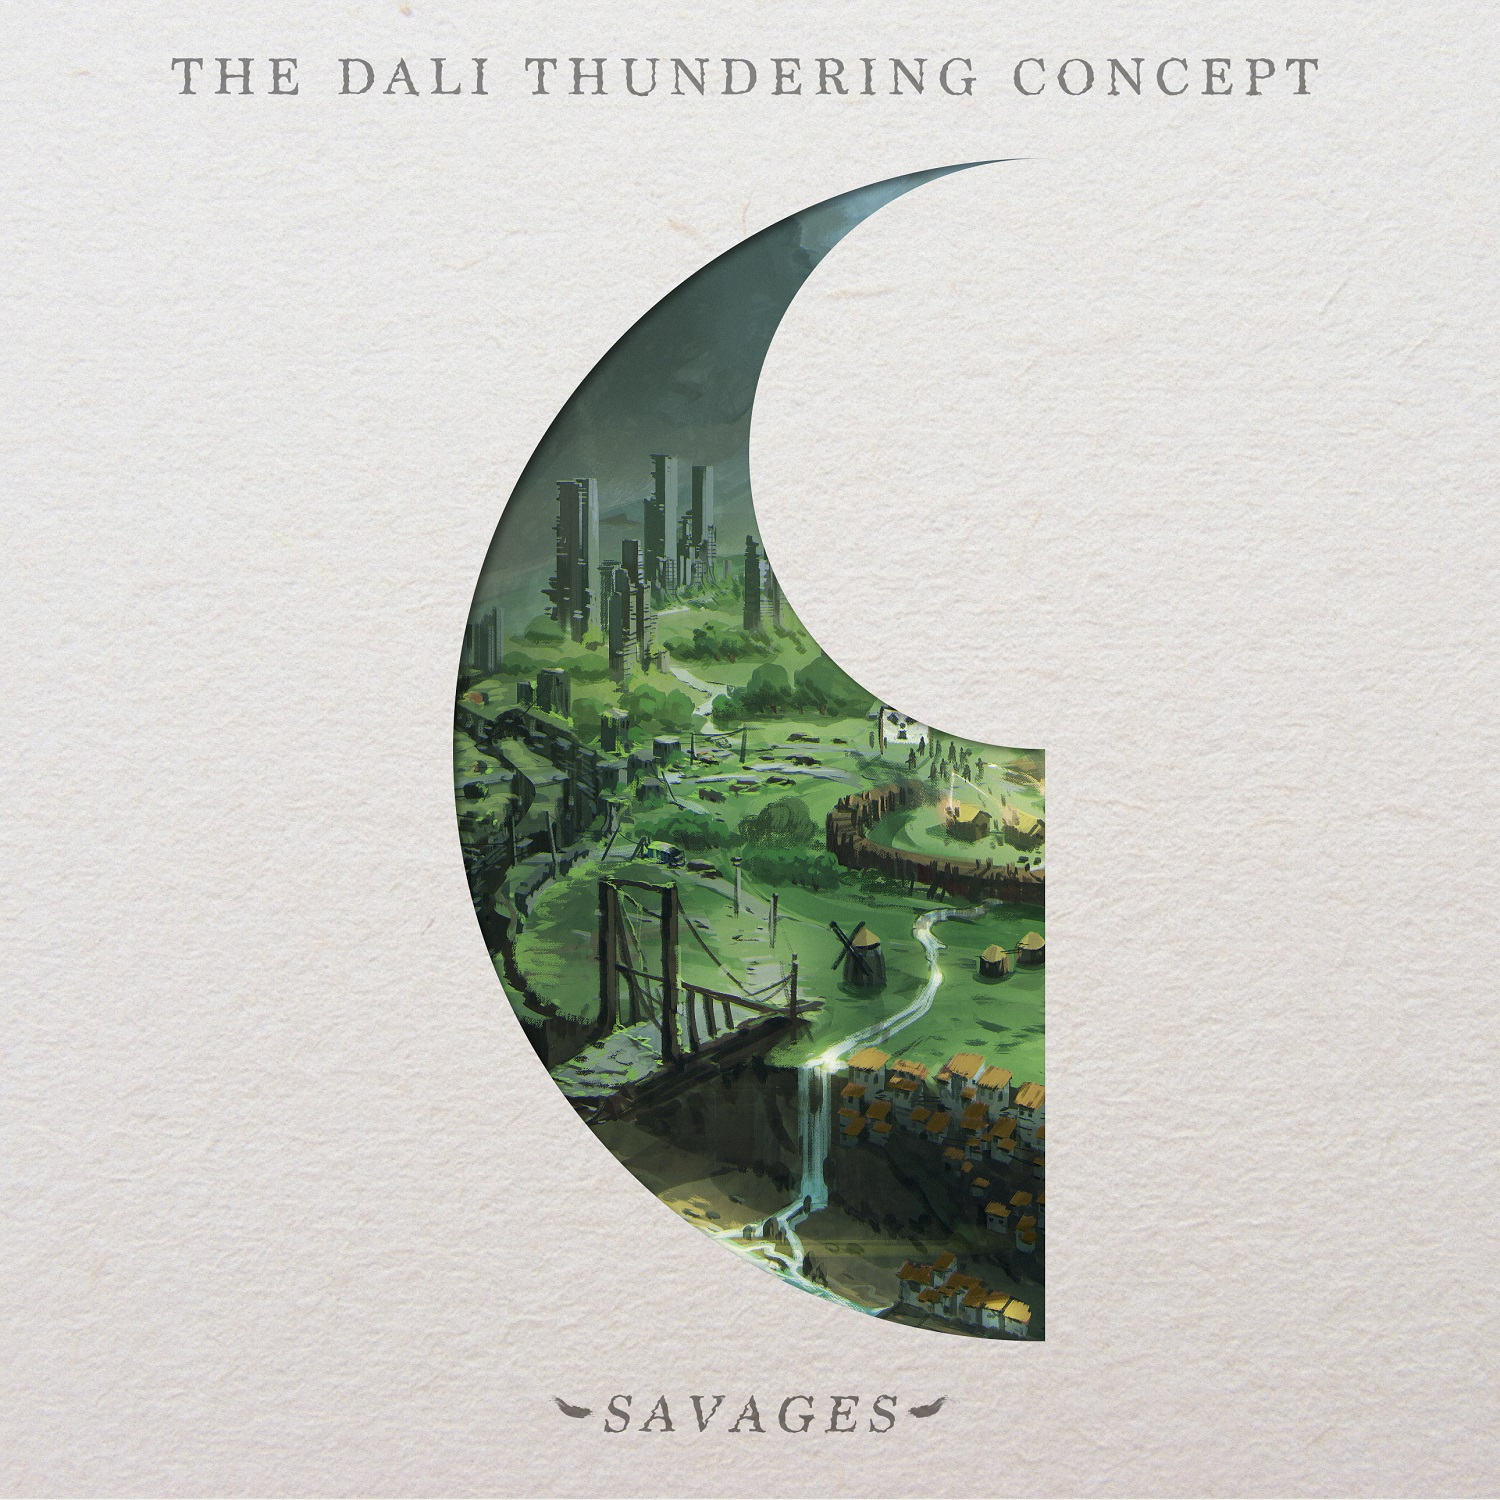 The Dali Thundering Concept – Savages